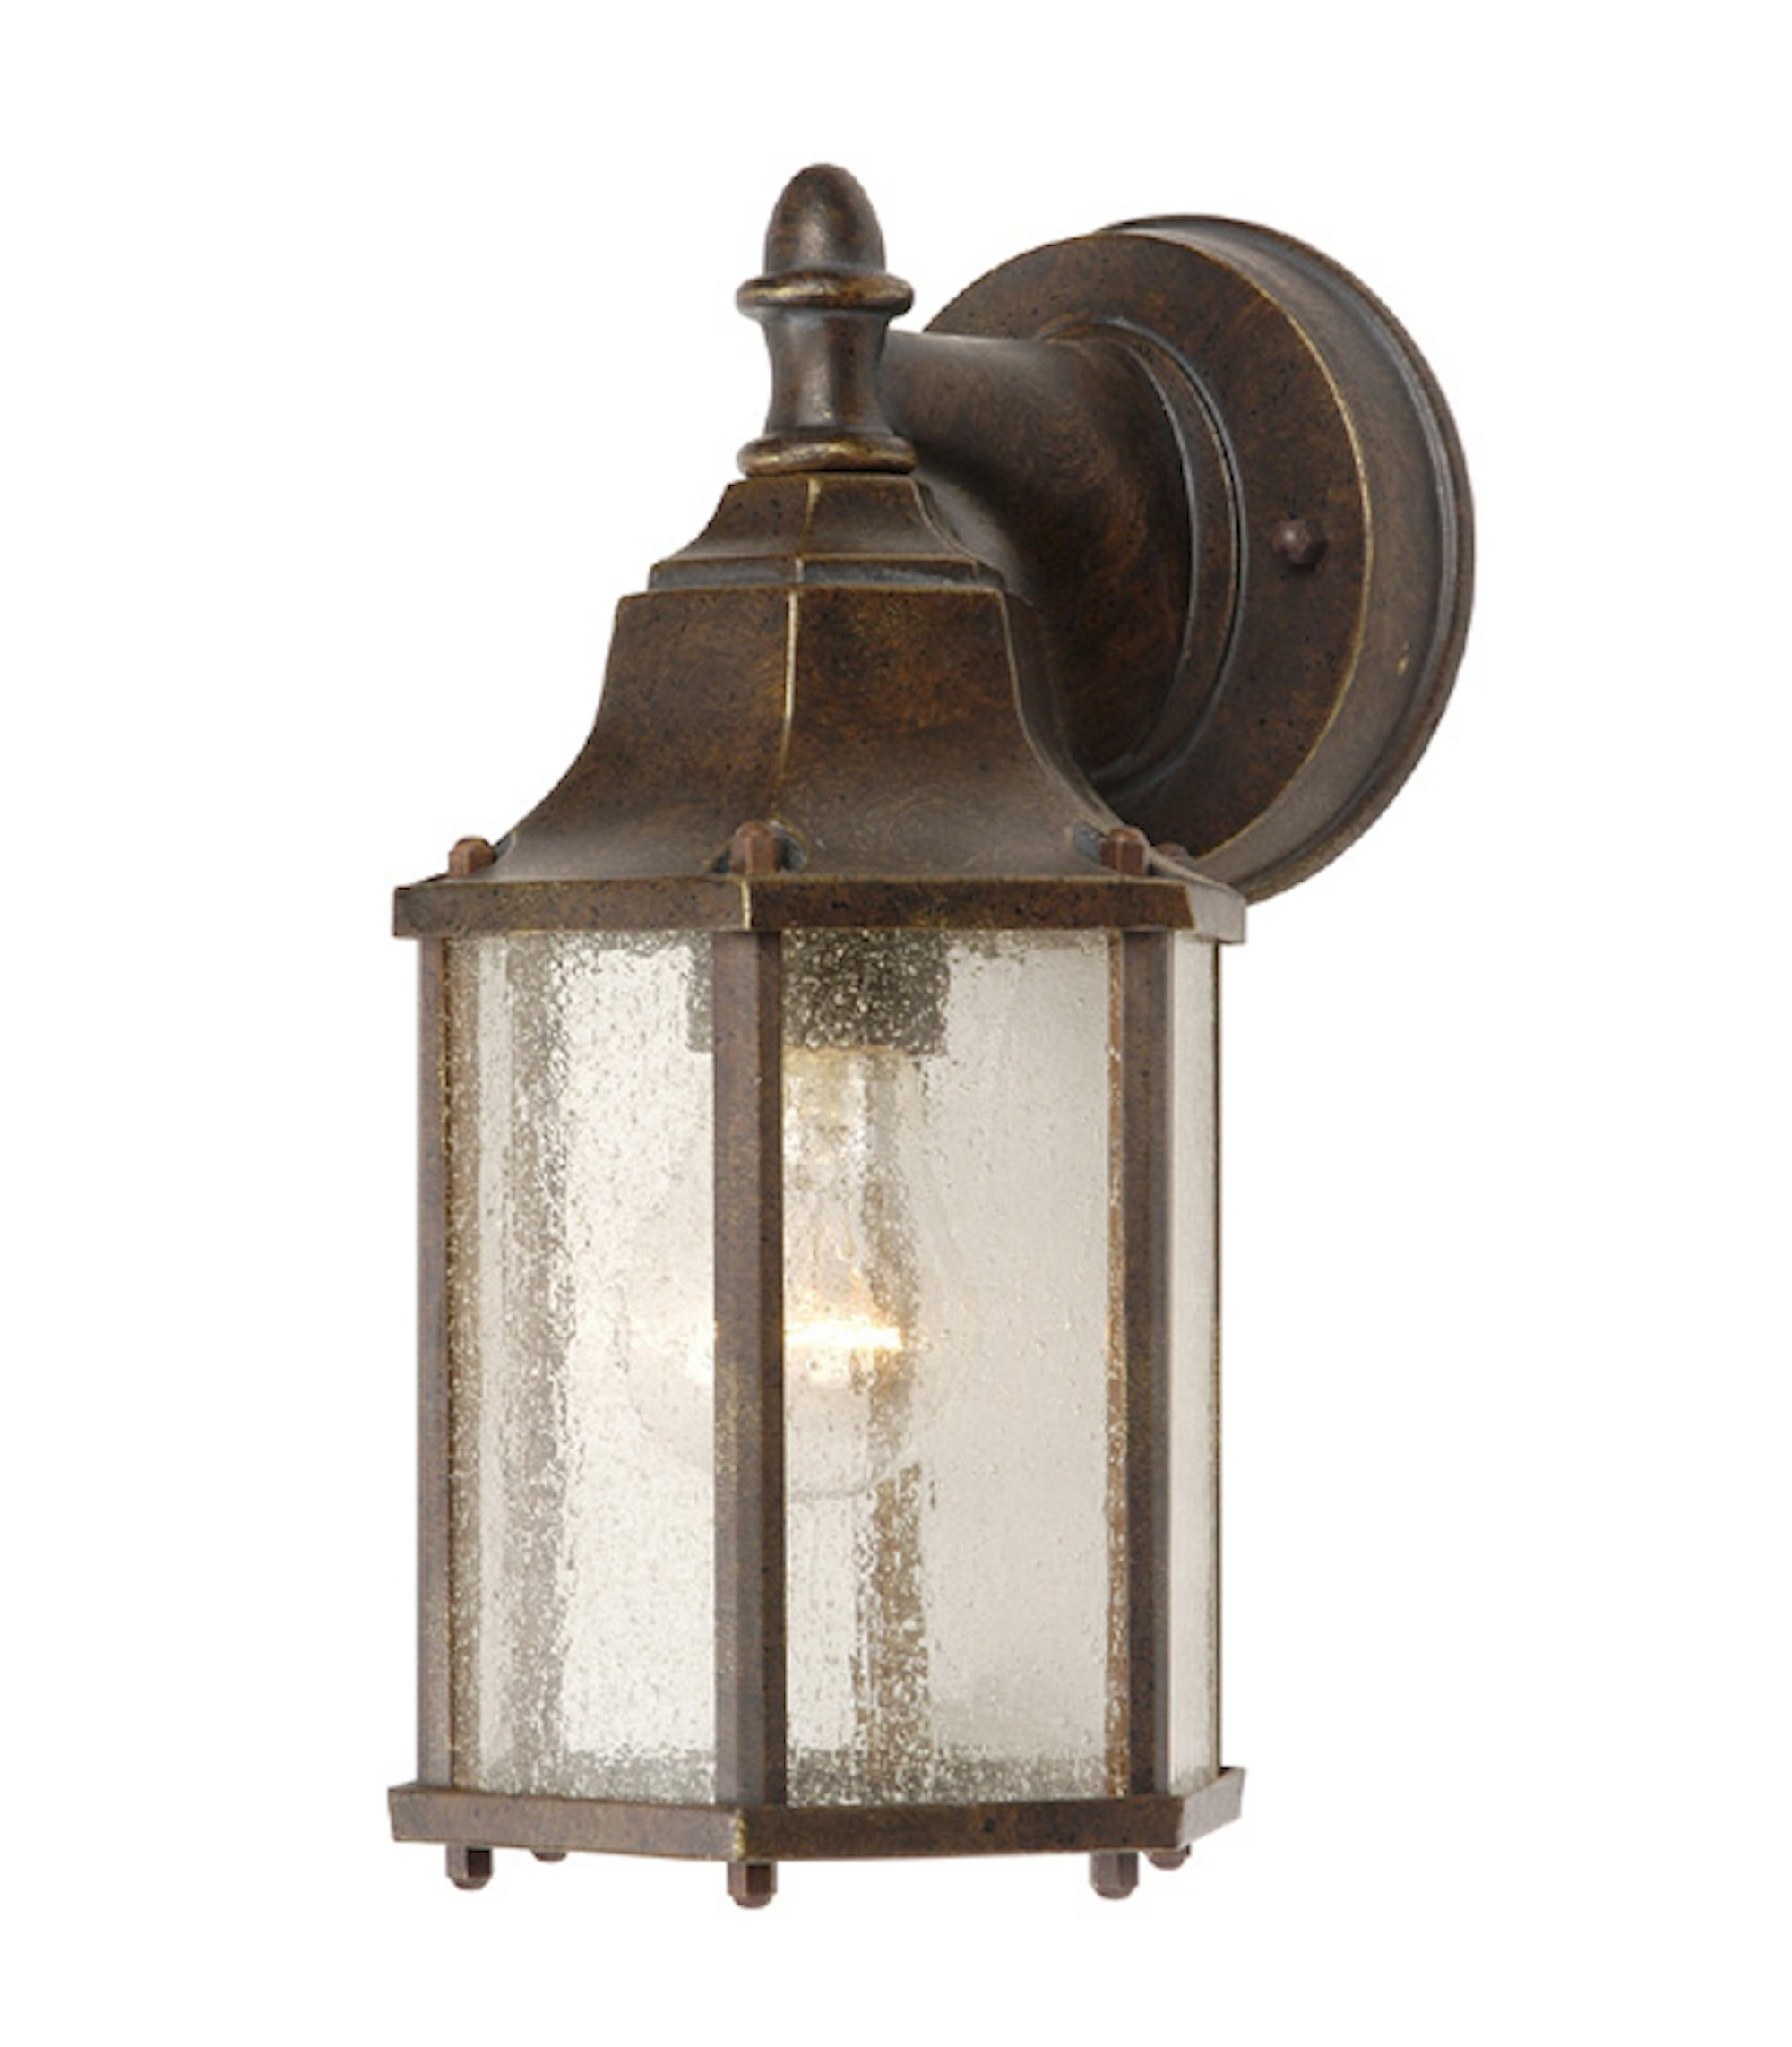 Mariana Home | Wayfair Intended For Wayfair Outdoor Hanging Lighting Fixtures (View 11 of 15)